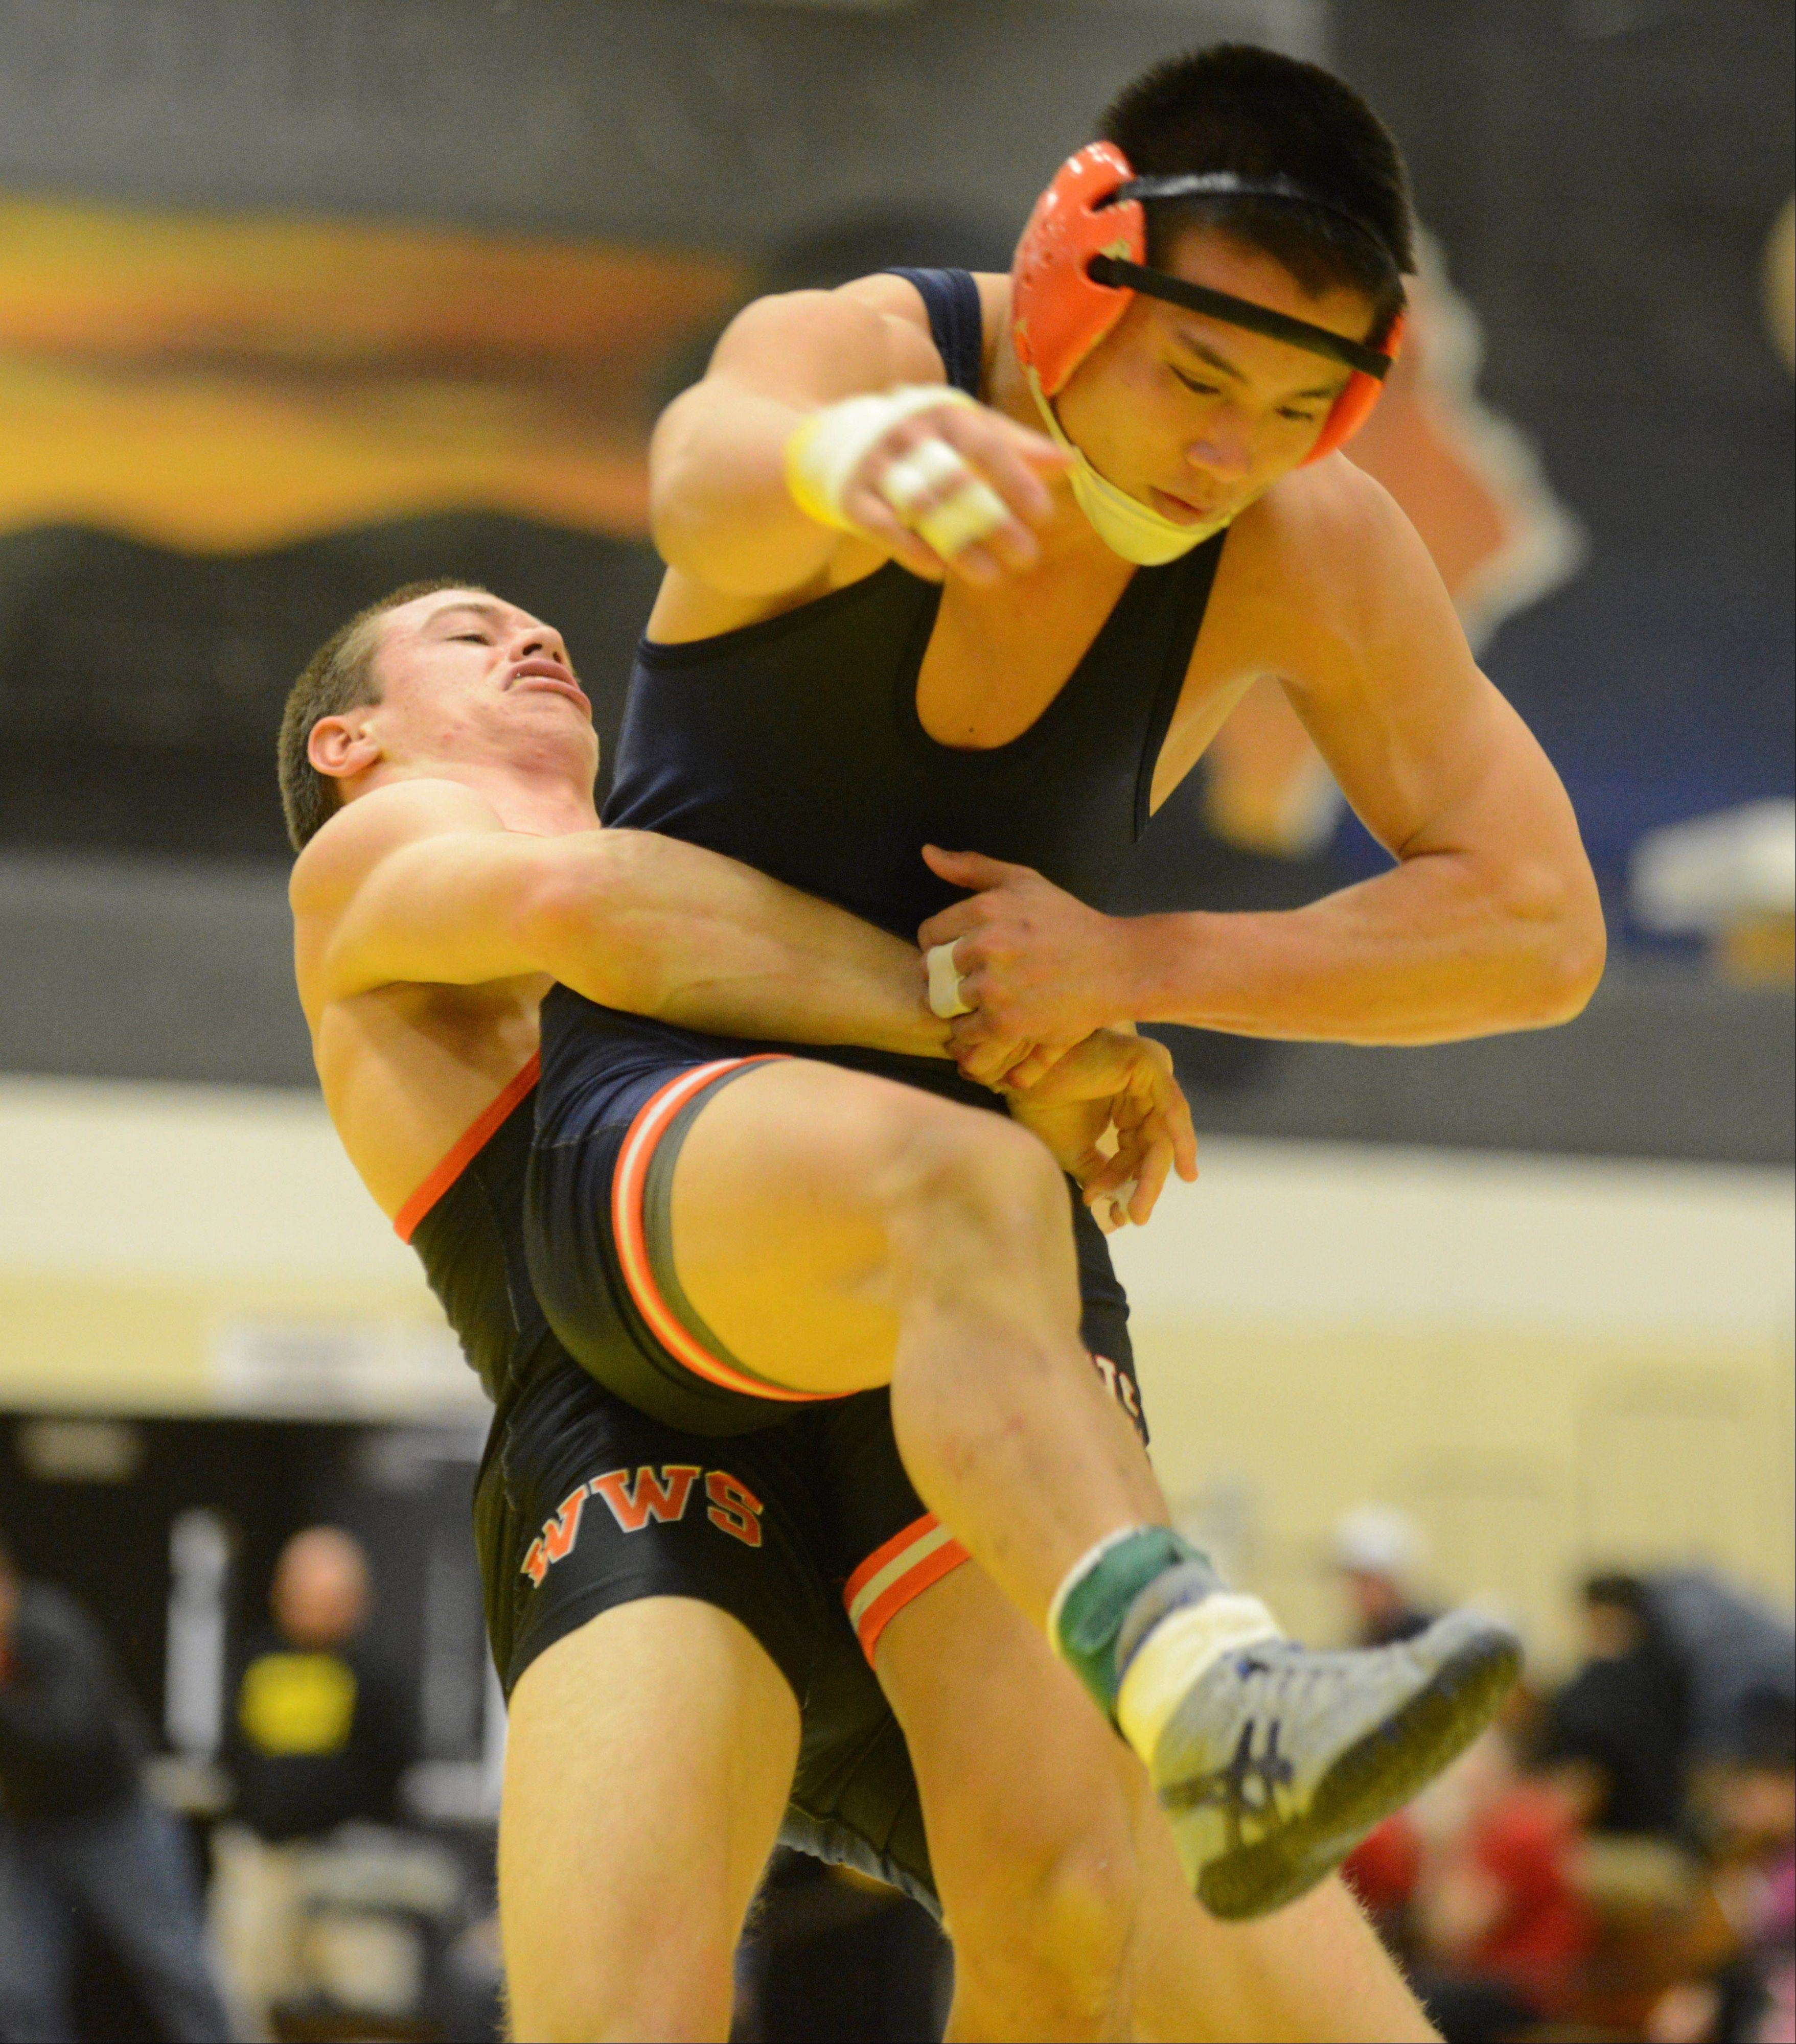 Andrew Ives of Wheaton Warrenville South,left, lifts lifts Chris Junior of Naperville north during a 152 pound match at the DuPage Valley Conference wrestling meet in Carol Stream Saturday.